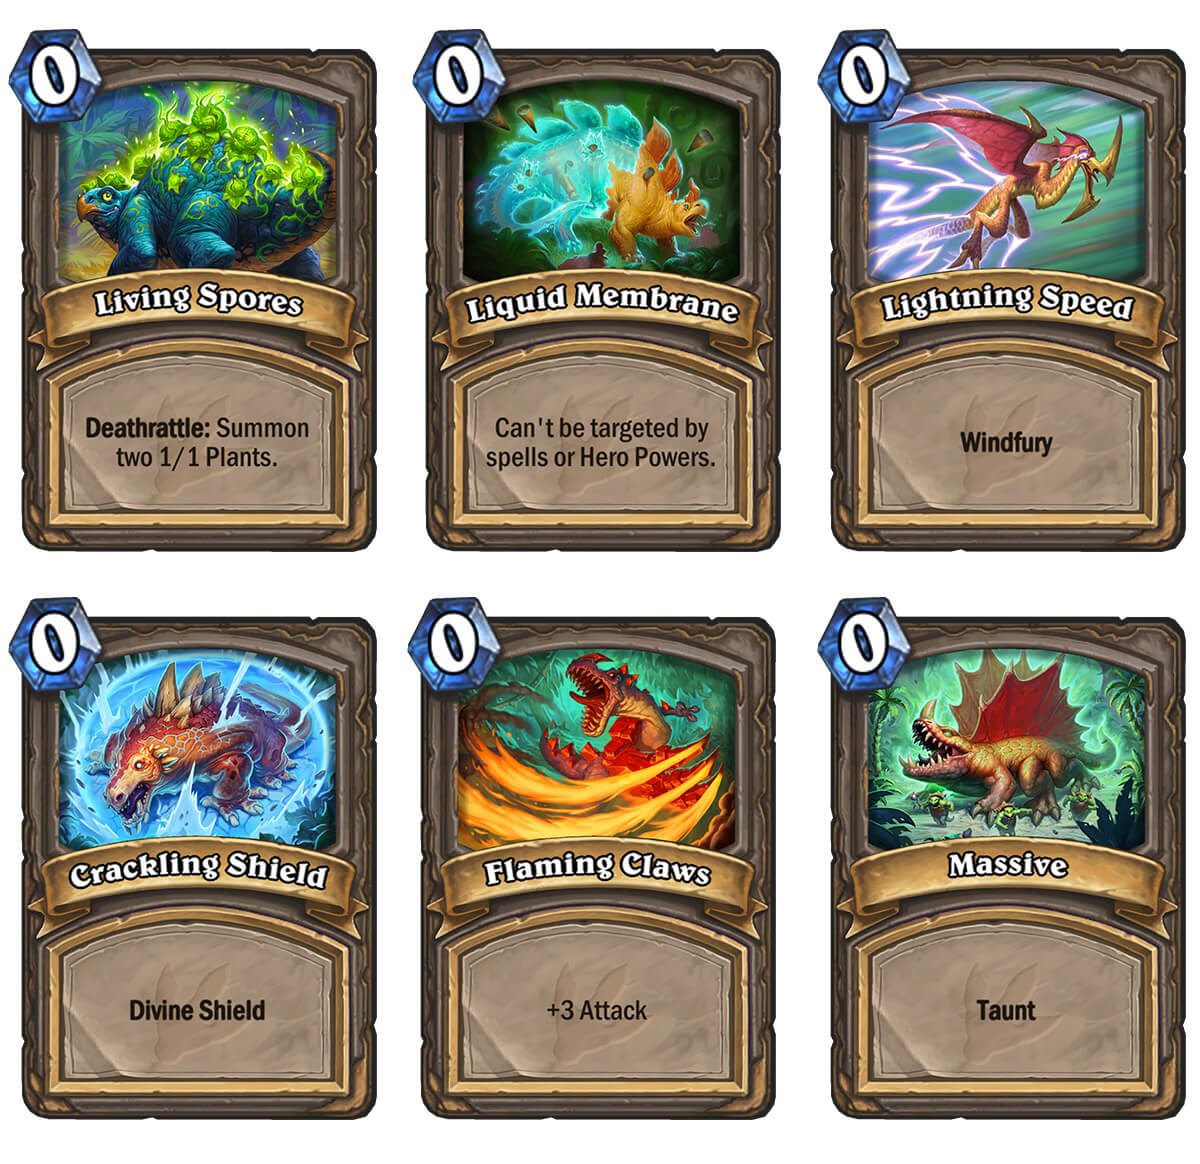 New Hearthstone Patch Arrives Just Ahead of Next Expansion